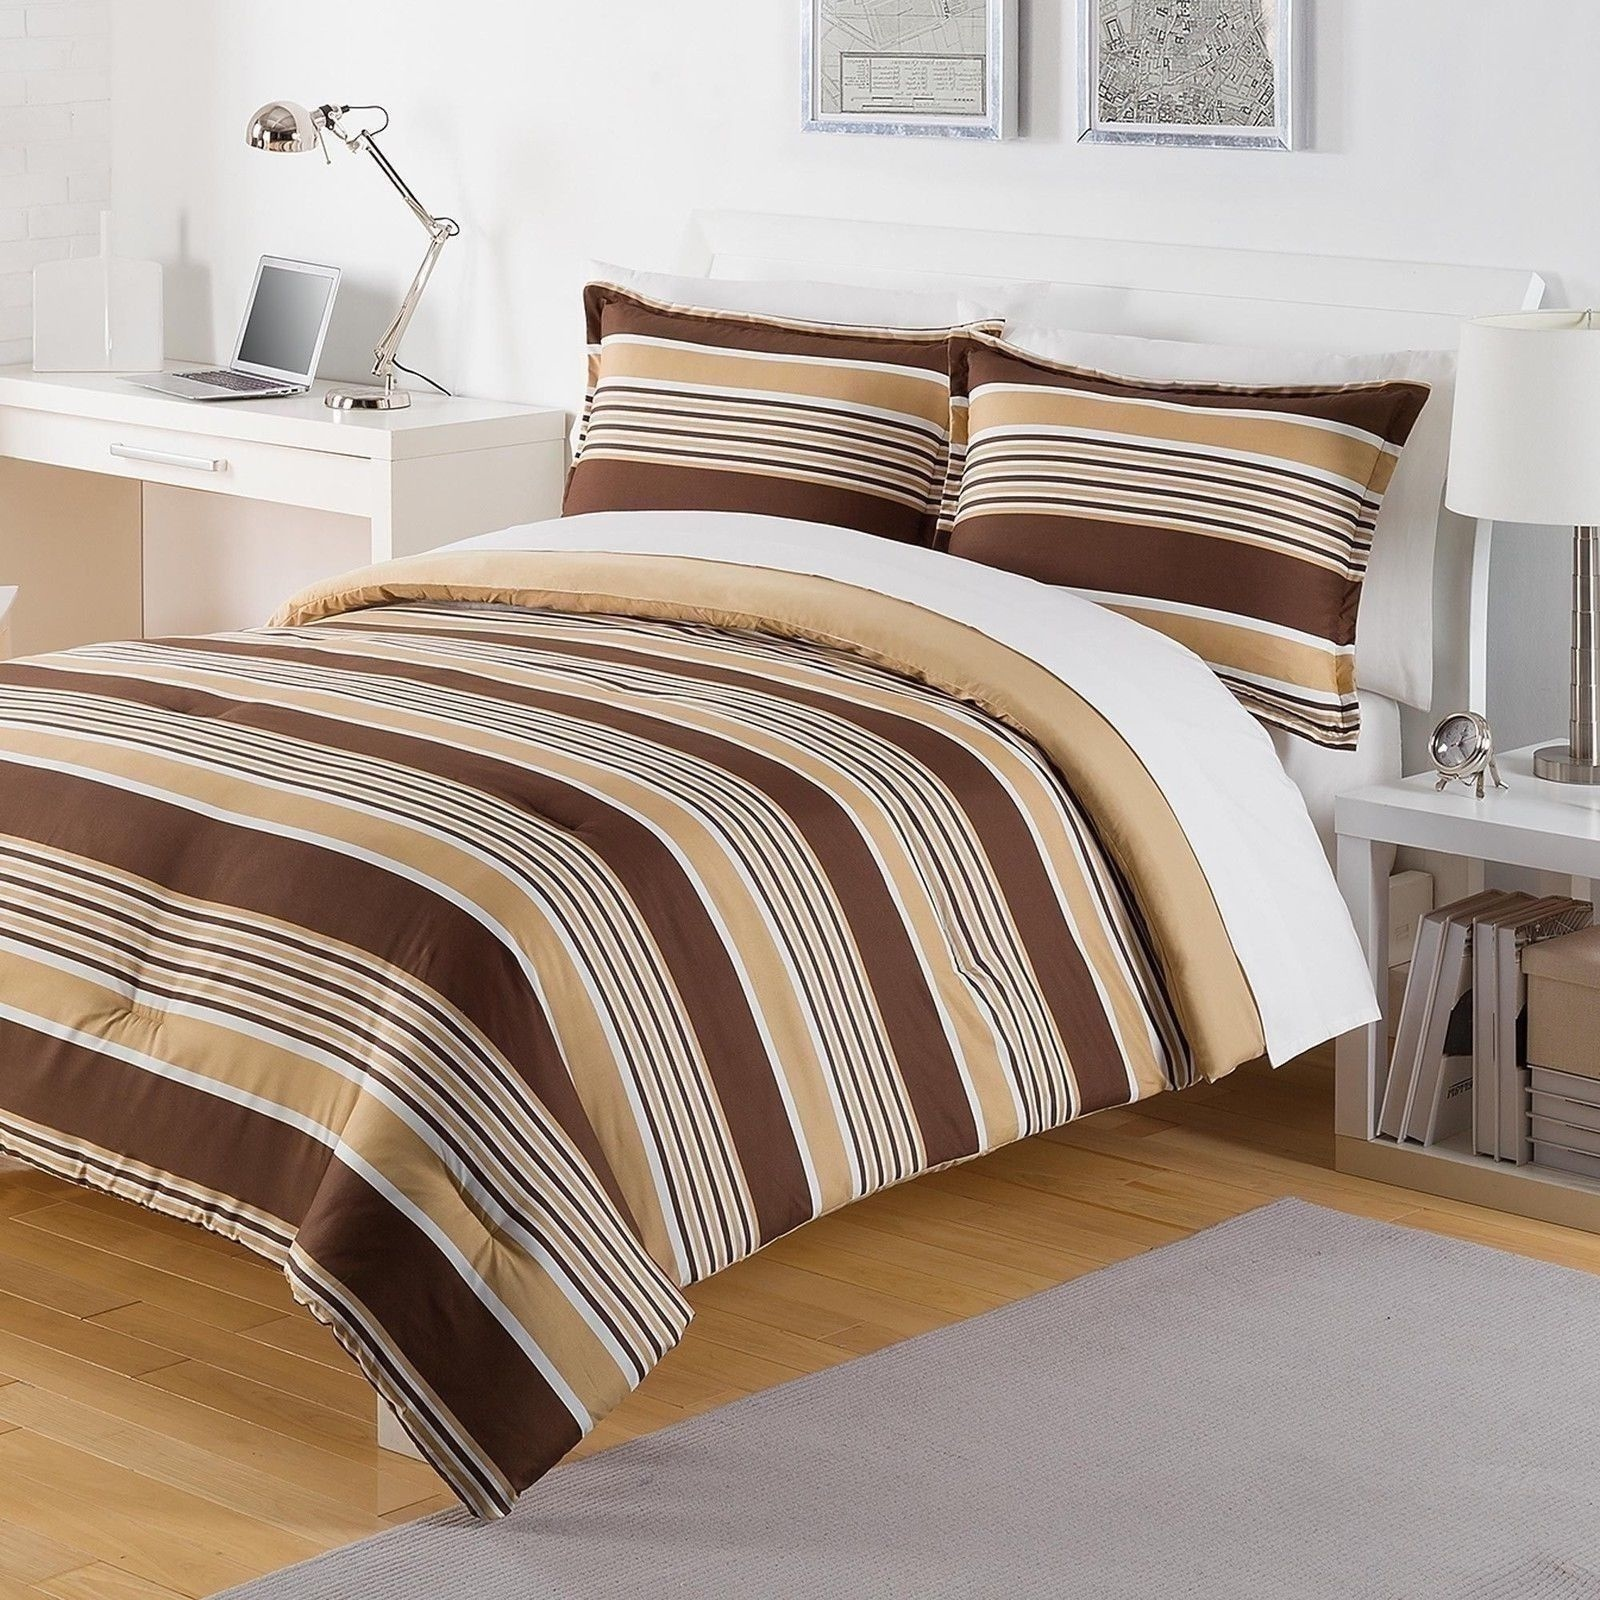 New Twin Full Queen King Bed Bag Brown Tan White Stripes 3